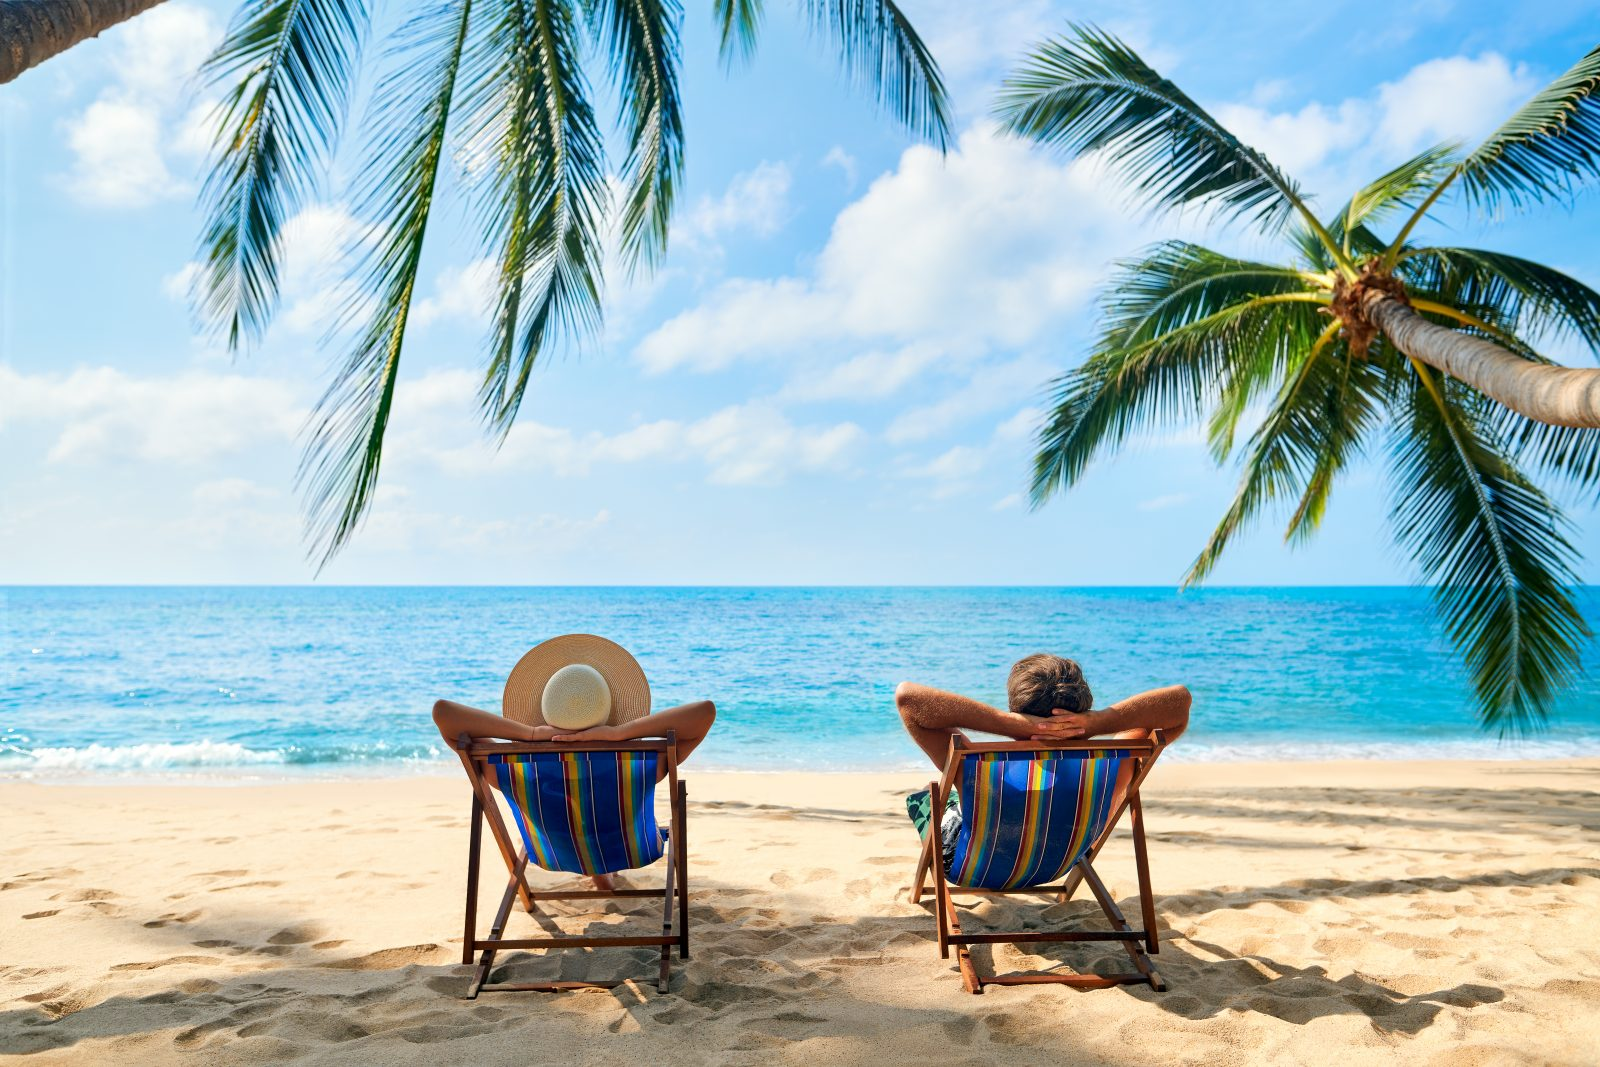 Are you vaccinated for your holiday vacation trip?